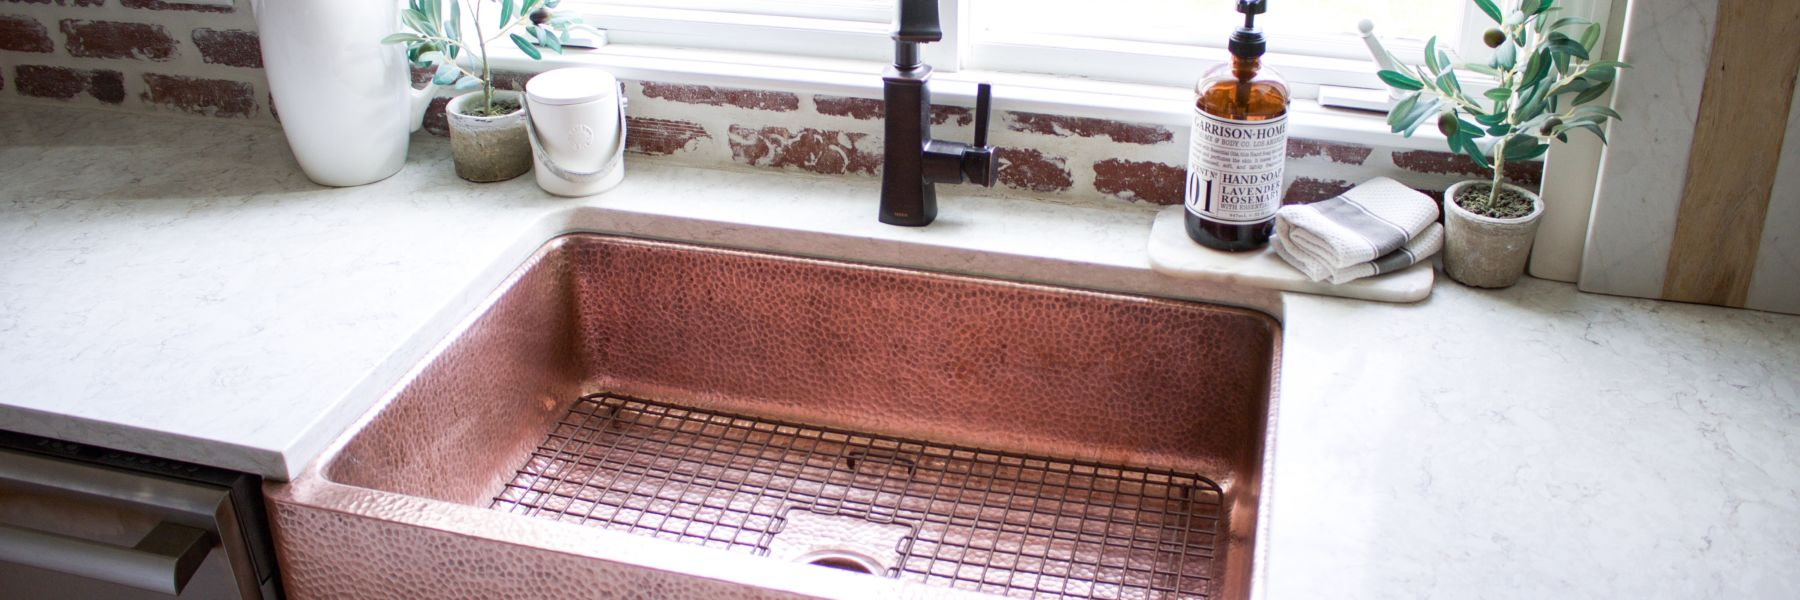 farmhouse-copper-sink